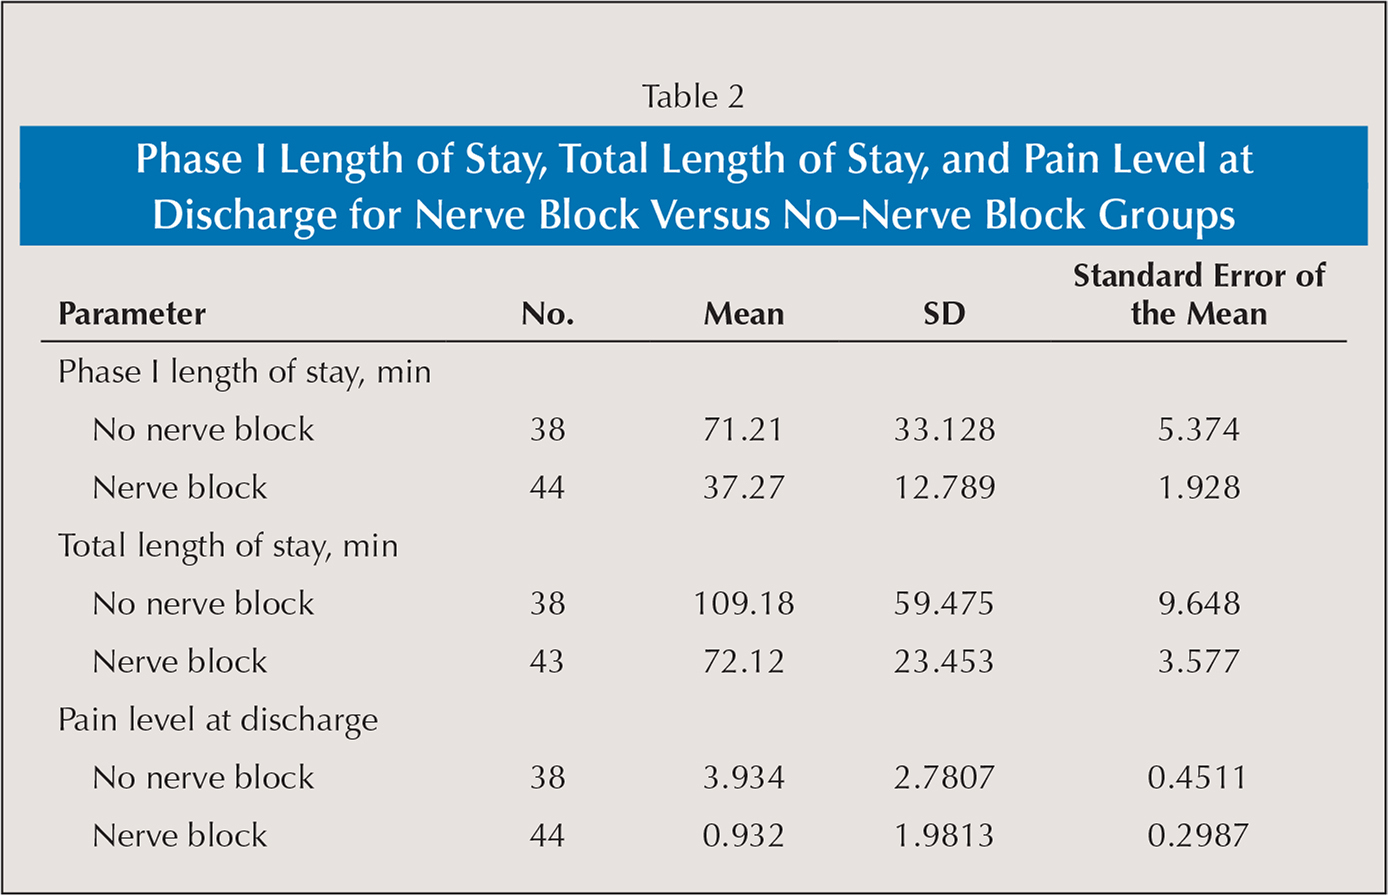 Phase I Length of Stay, Total Length of Stay, and Pain Level at Discharge for Nerve Block Versus No–Nerve Block Groups